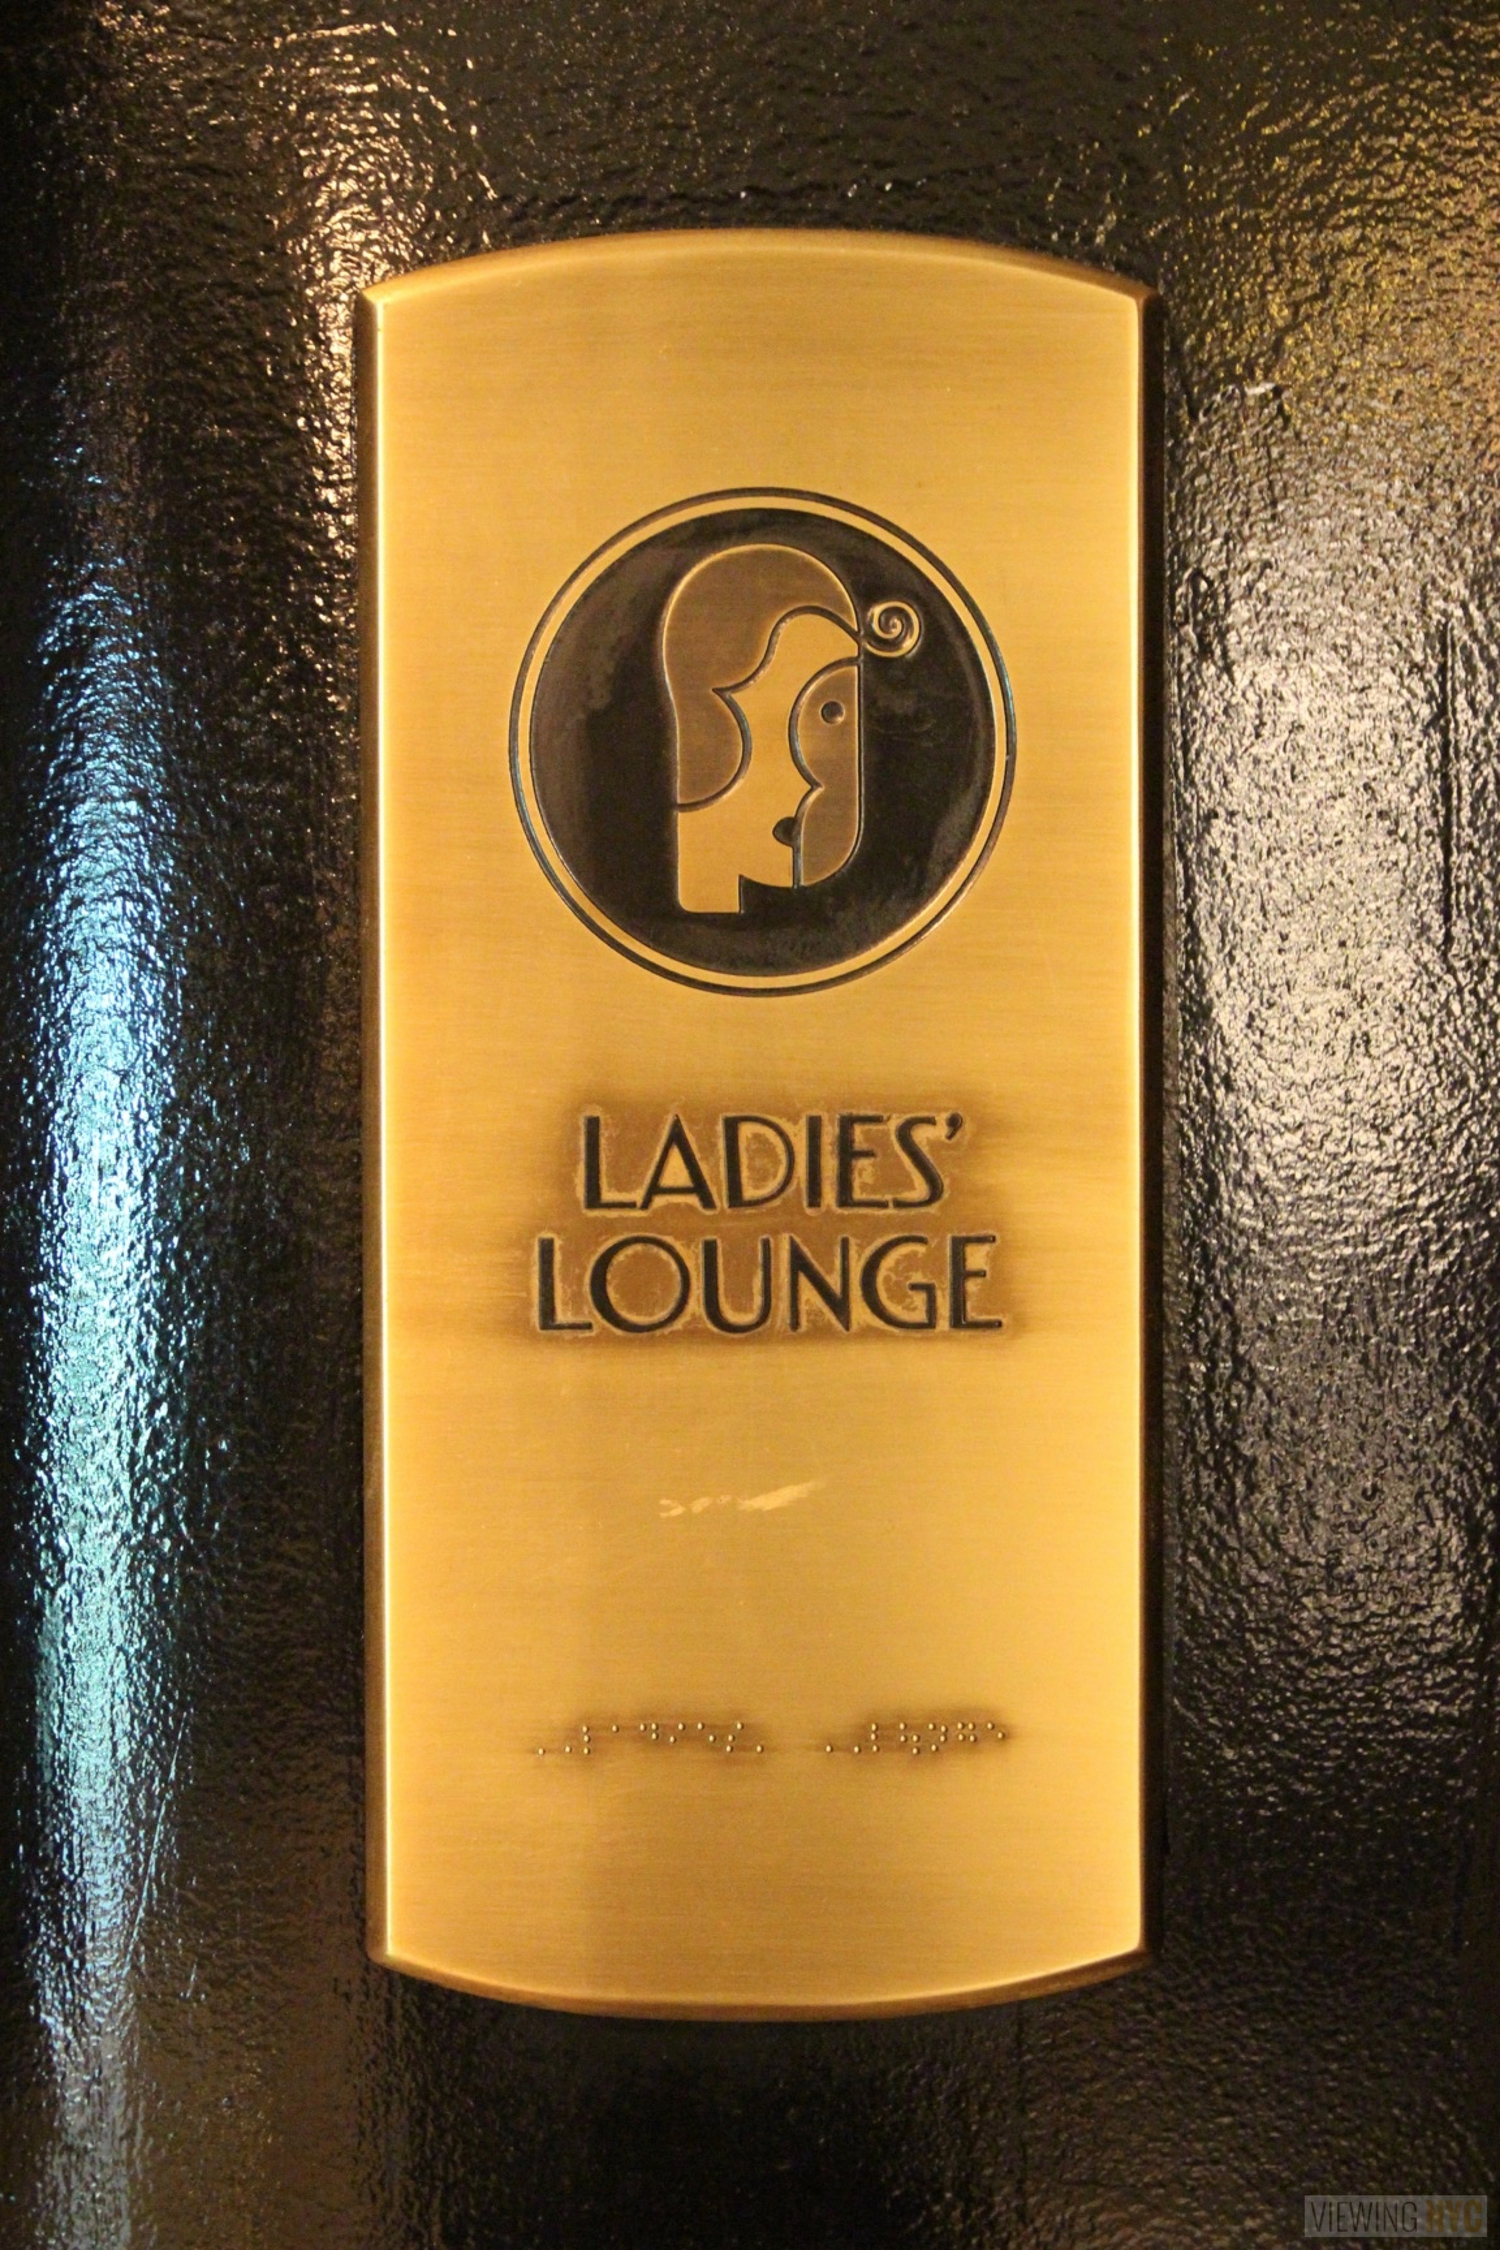 "Ladies Lounge Brass Plate | Built in 1932, Radio City Music Hall is a prime example of art deco architectural style that has withstood the test of time. With tons of gold, reflective surfaces and geometric design, walking through the venue is a bit like stepping back in time. Most of the fixtures, furniture and ornamentation are original, and any replacements are exact replicas of how the theater looked 80 years ago.  Read more here: <a href=""https://viewing.nyc/i-braved-a-walkthrough-of-radio-city-music-hall-meant-for-tourists/"" rel=""nofollow"">viewing.nyc/i-braved-a-walkthrough-of-radio-city-music-ha...</a>"